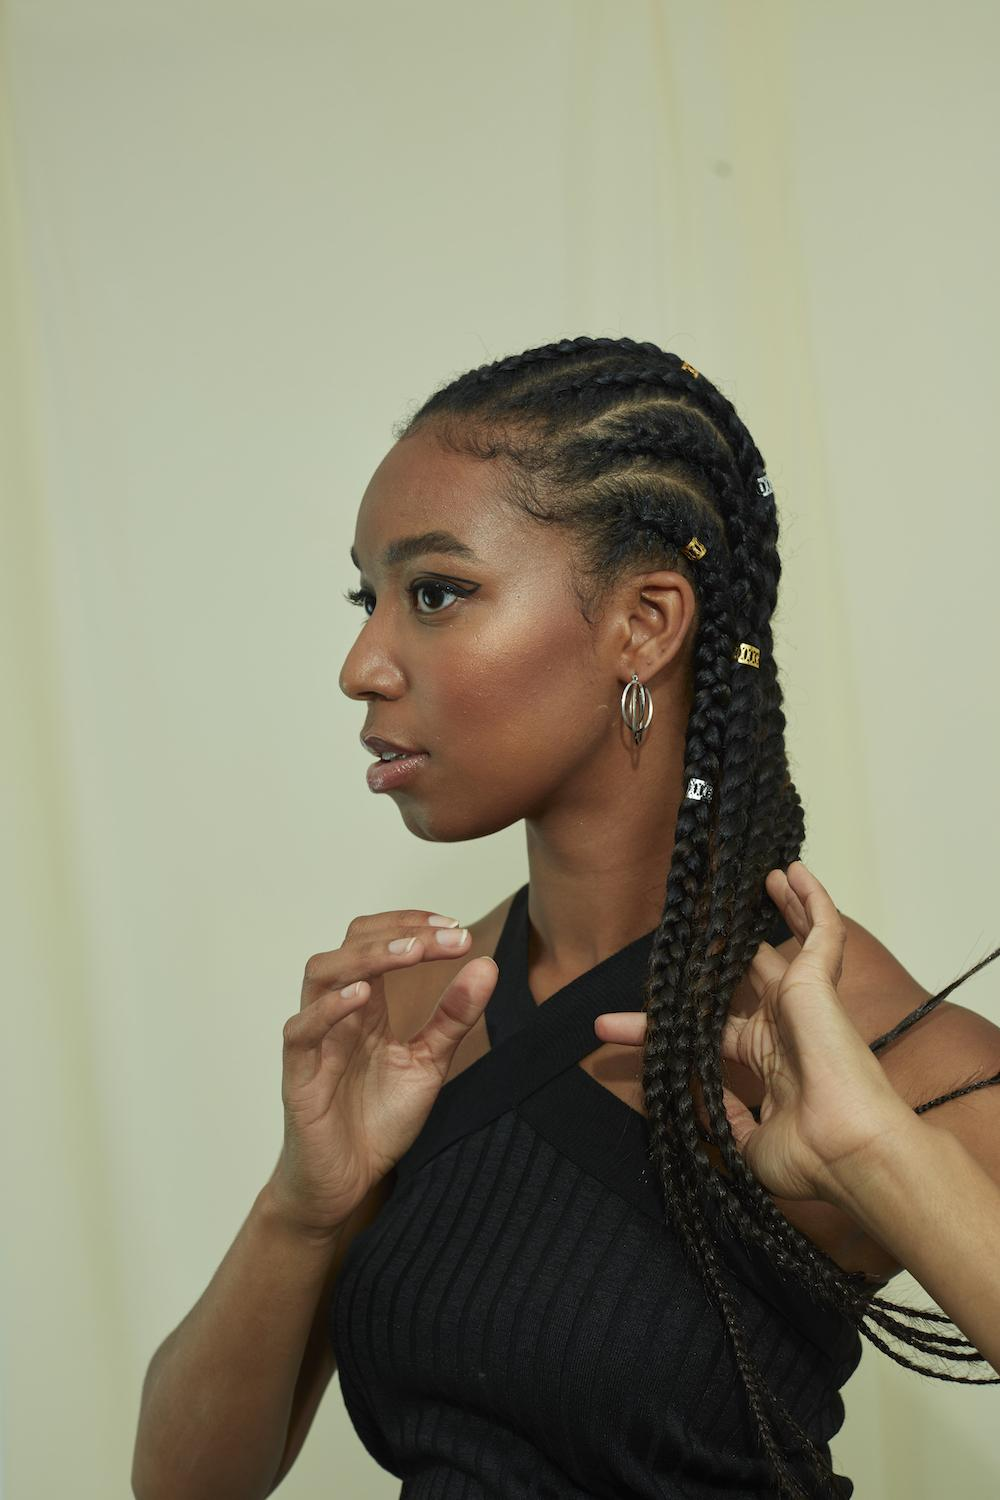 Braid Styles For Black Women To Try All Things Hair 2020